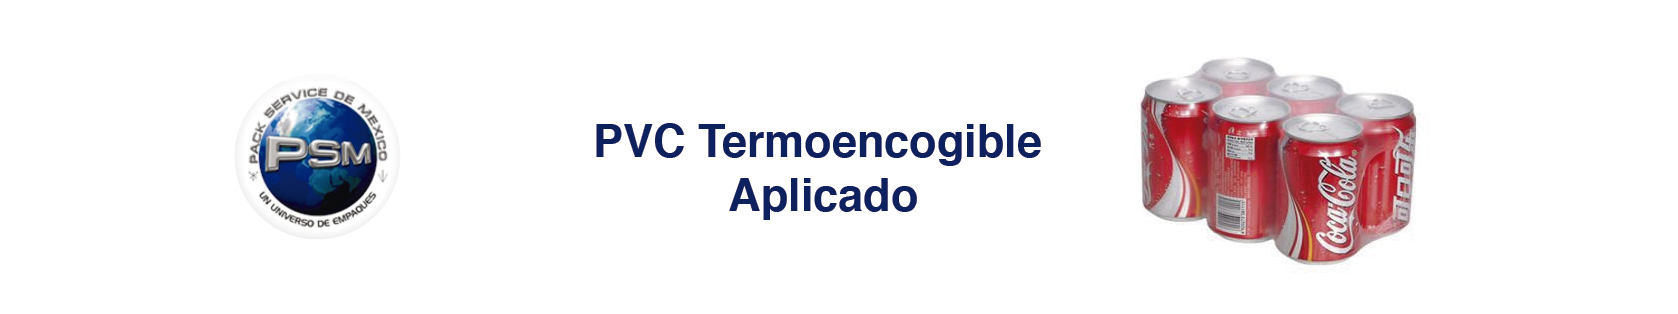 pvc termoencogible.png